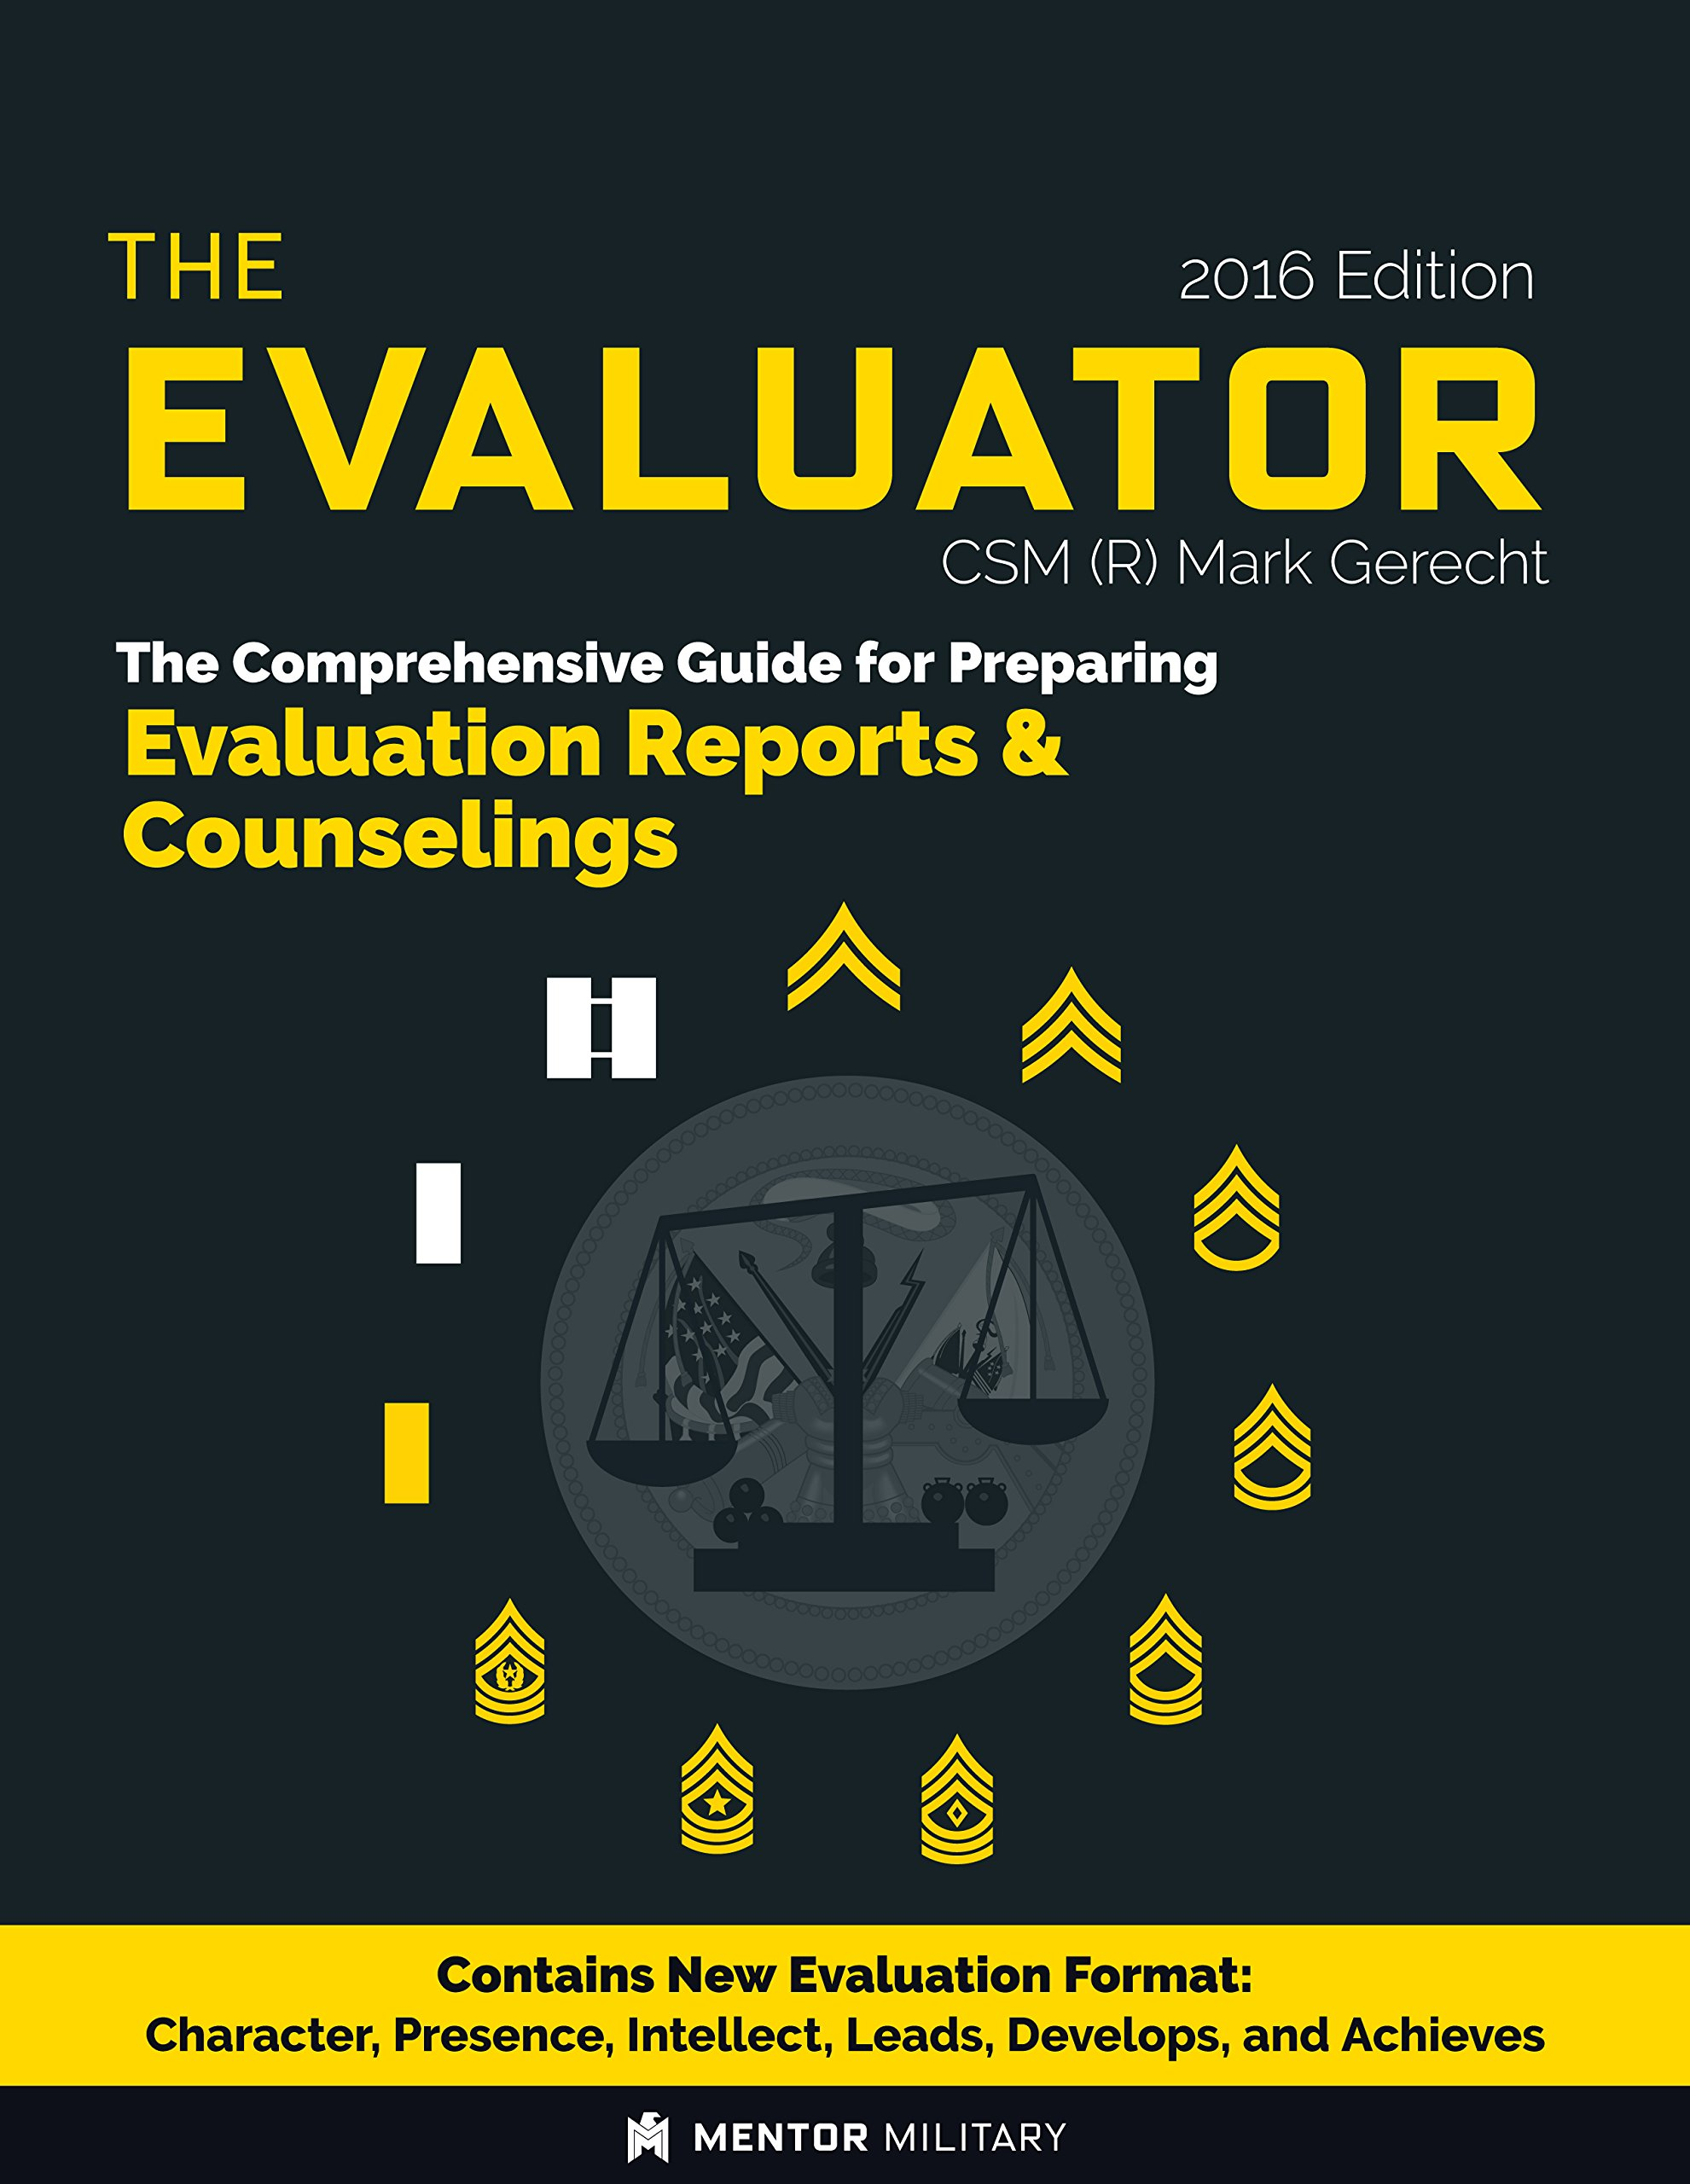 The Evaluator: The Comprehensive Guide For Preparing